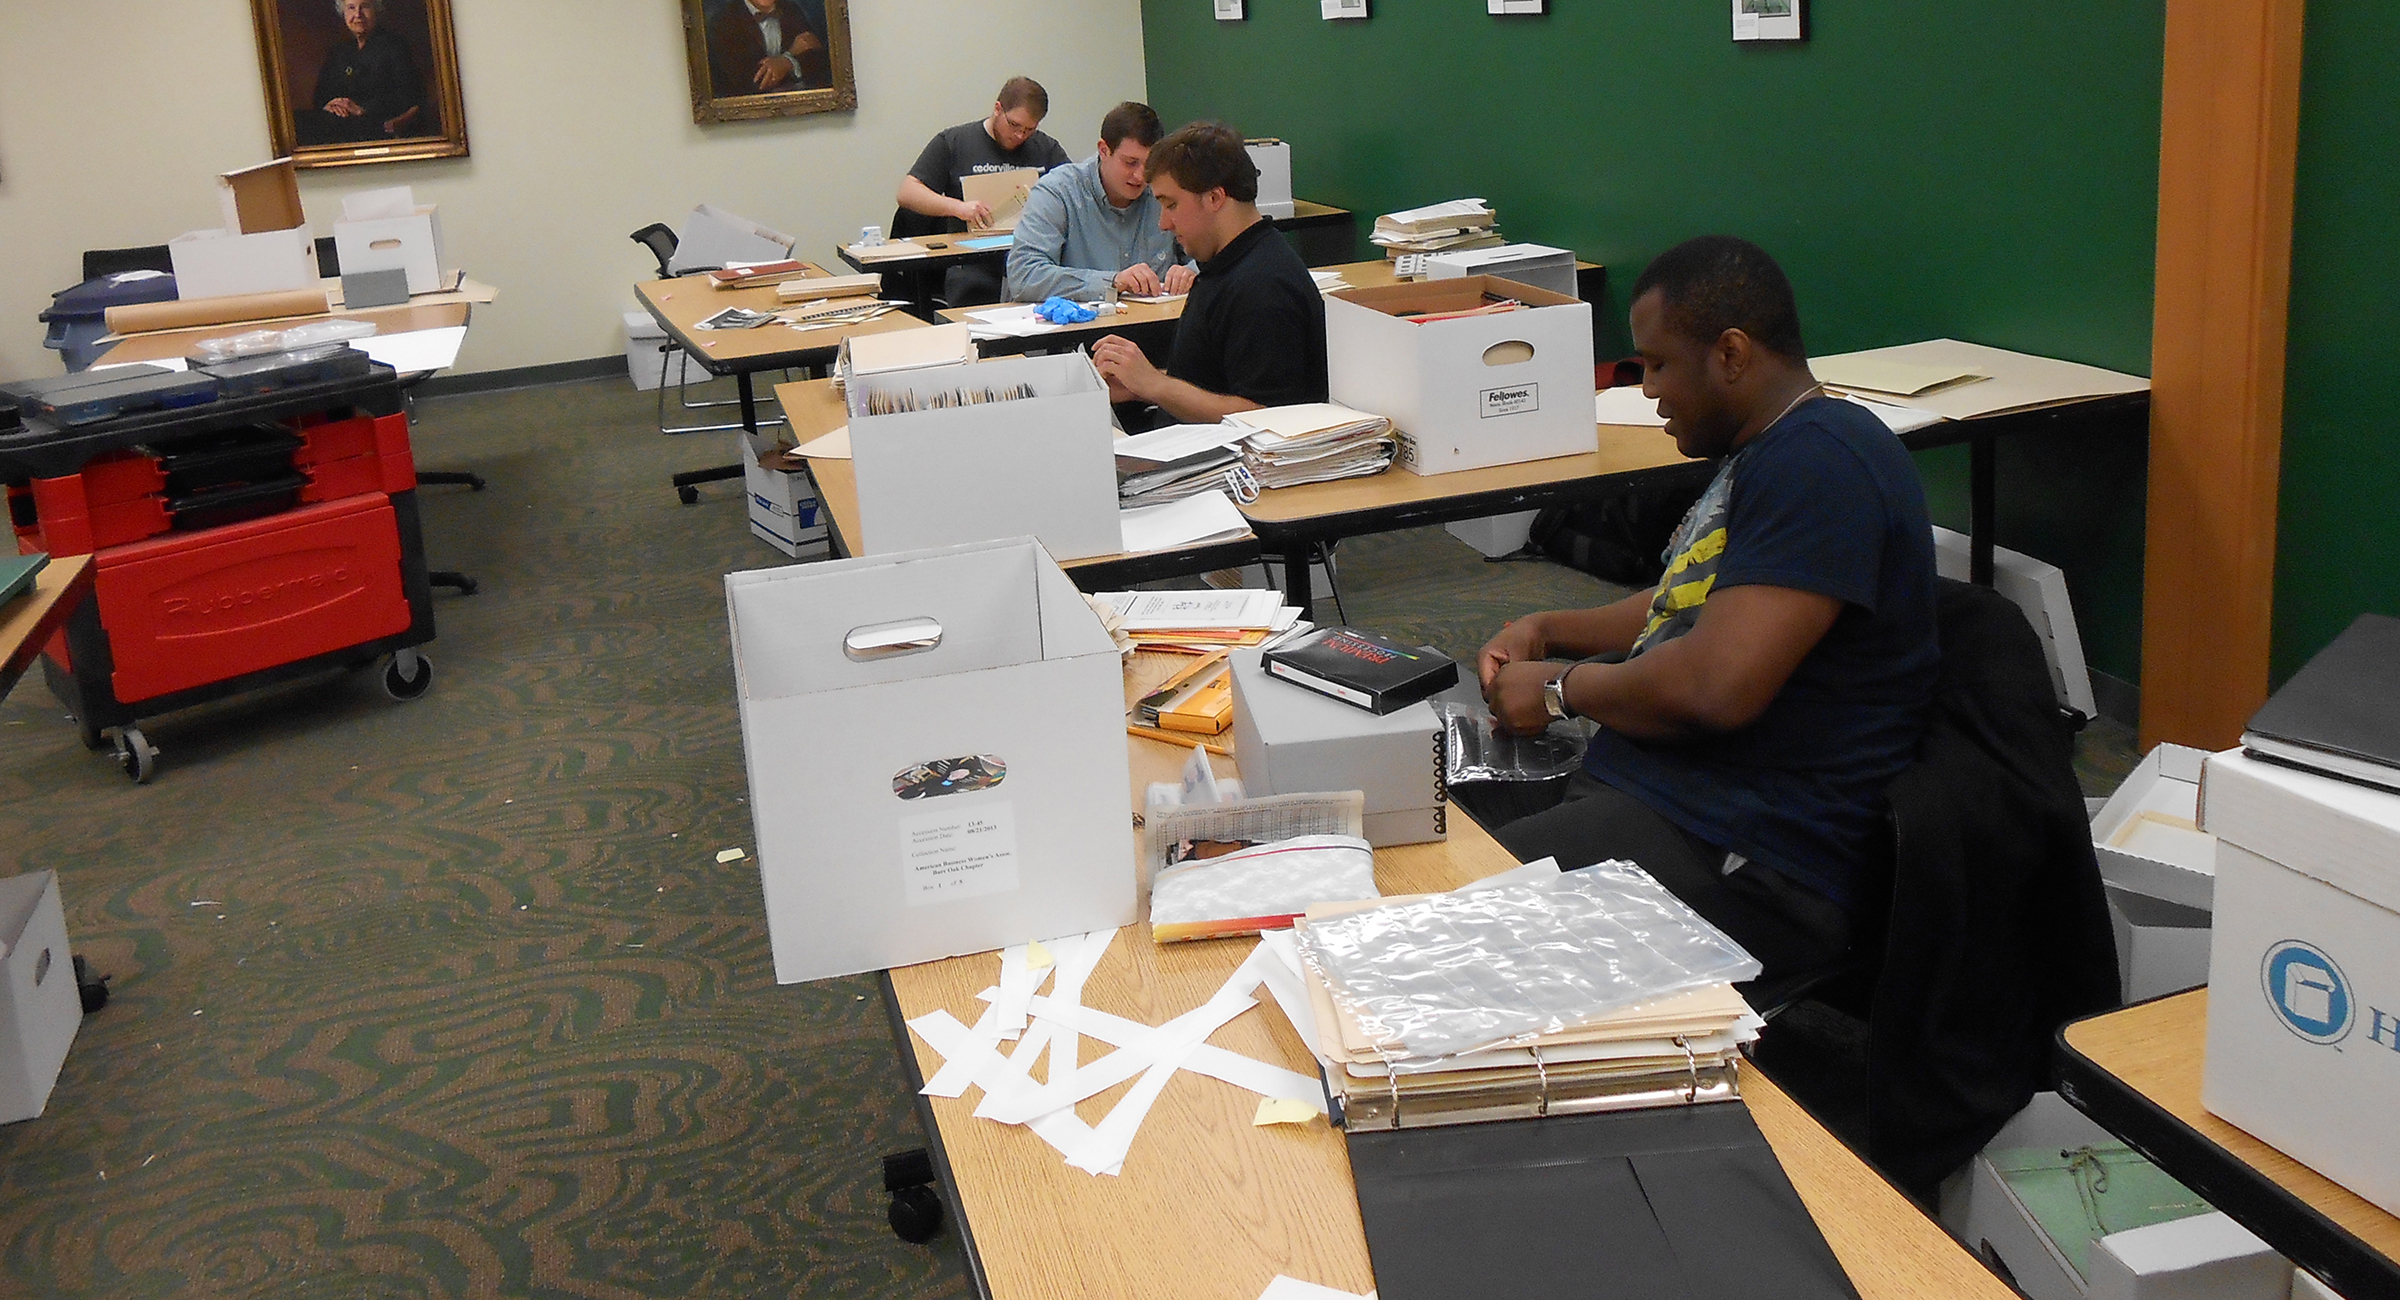 Public history graduate students in the Advanced Archives class processing collections, March 12, 2014.